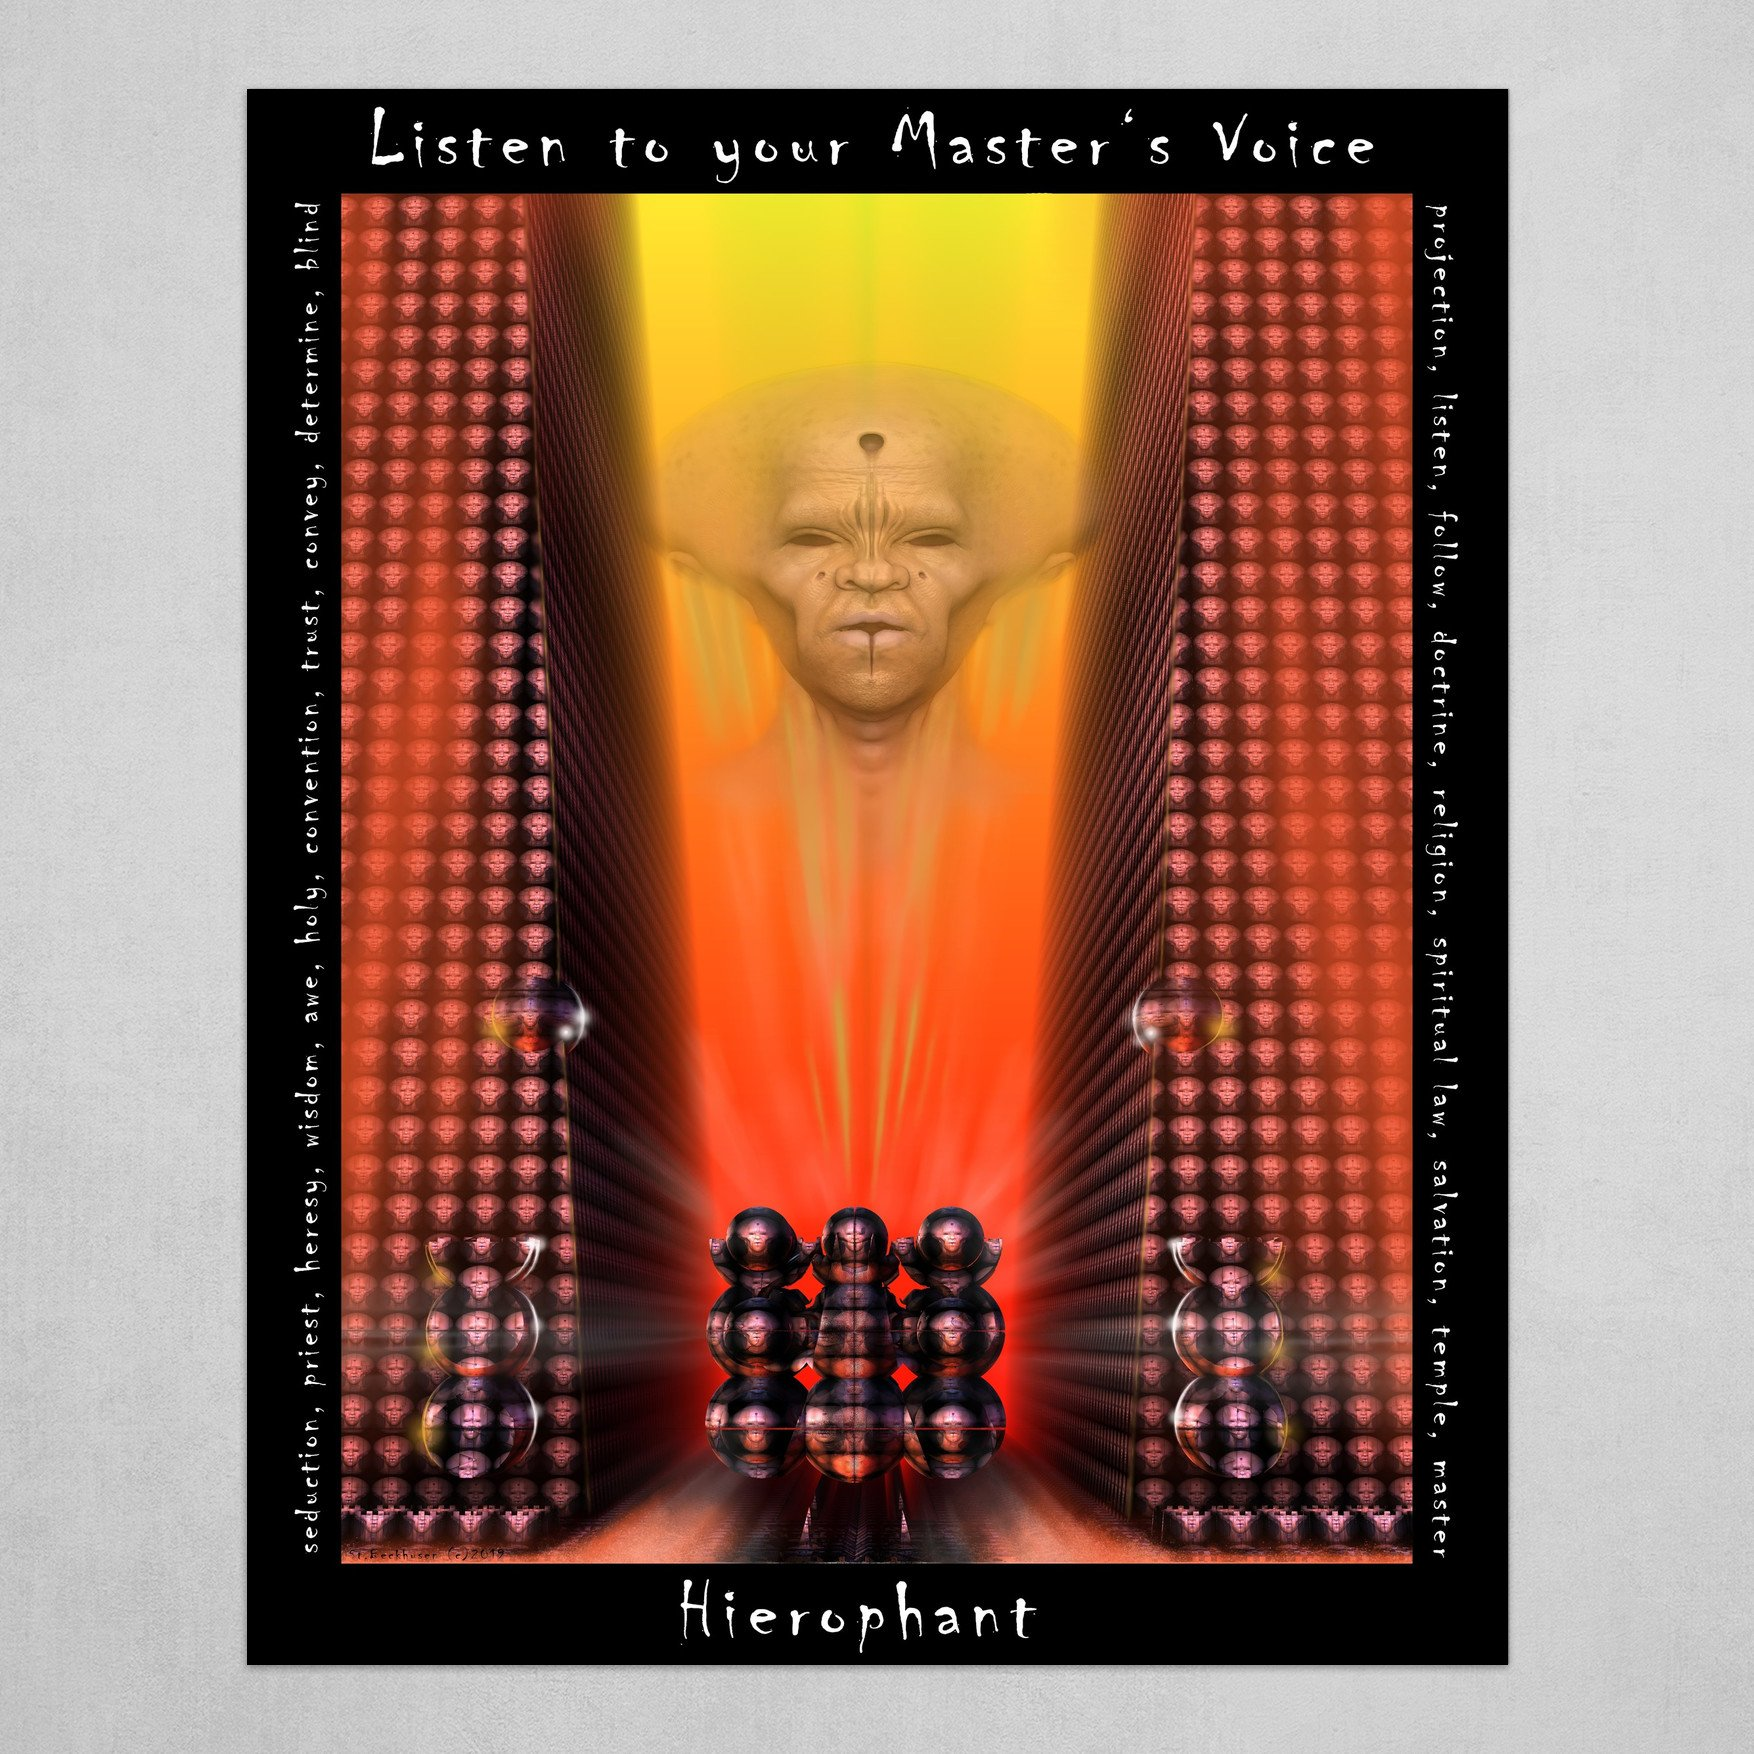 LISTEN TO YOUR MASTER'S VOICE  - Hierophant